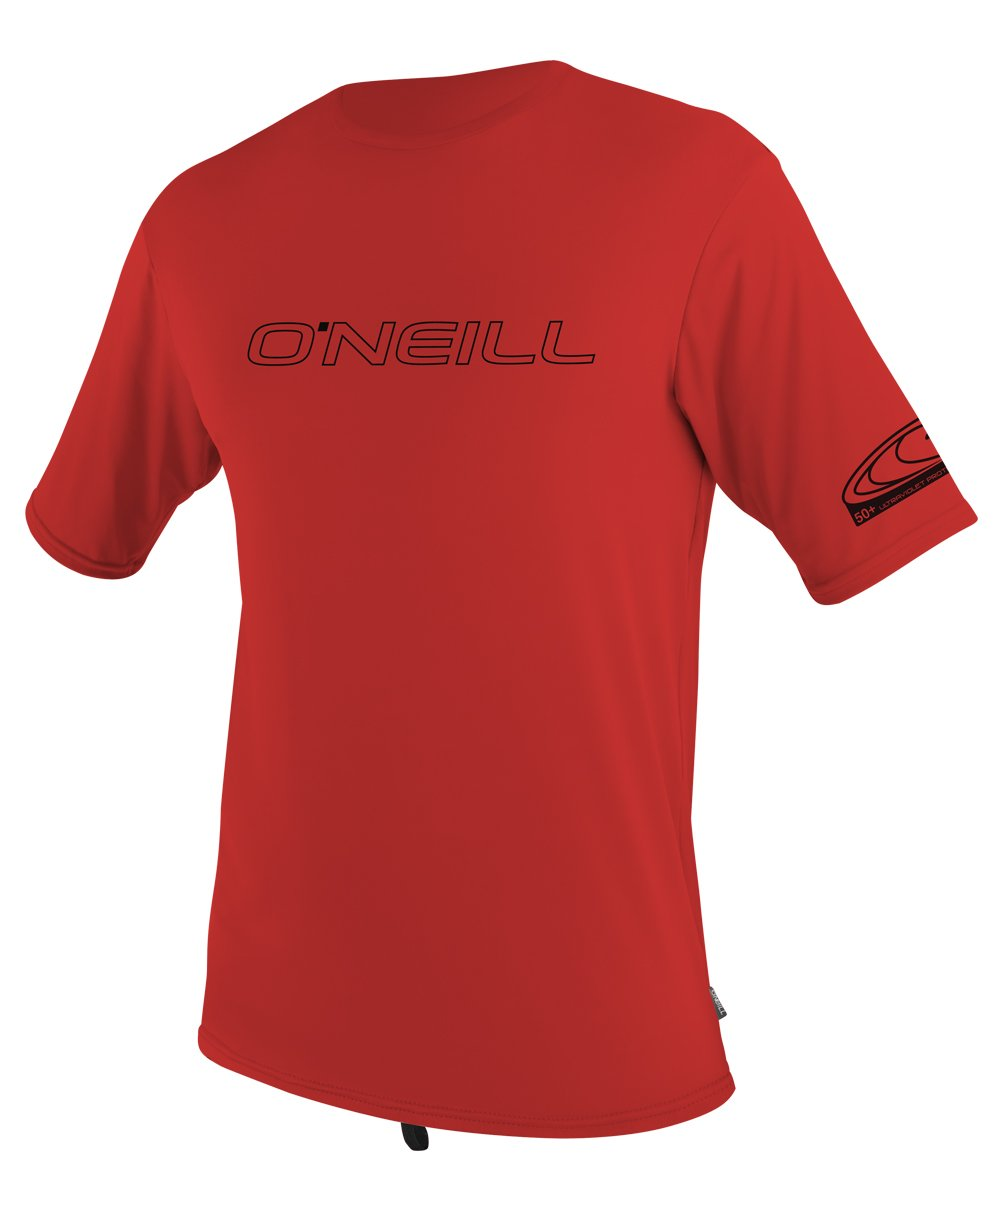 O'Neill Wetsuits UV Sun Protection Youth Basic Skins Short Sleeve Tee Rashguard  (Red, 14) by O'Neill Wetsuits